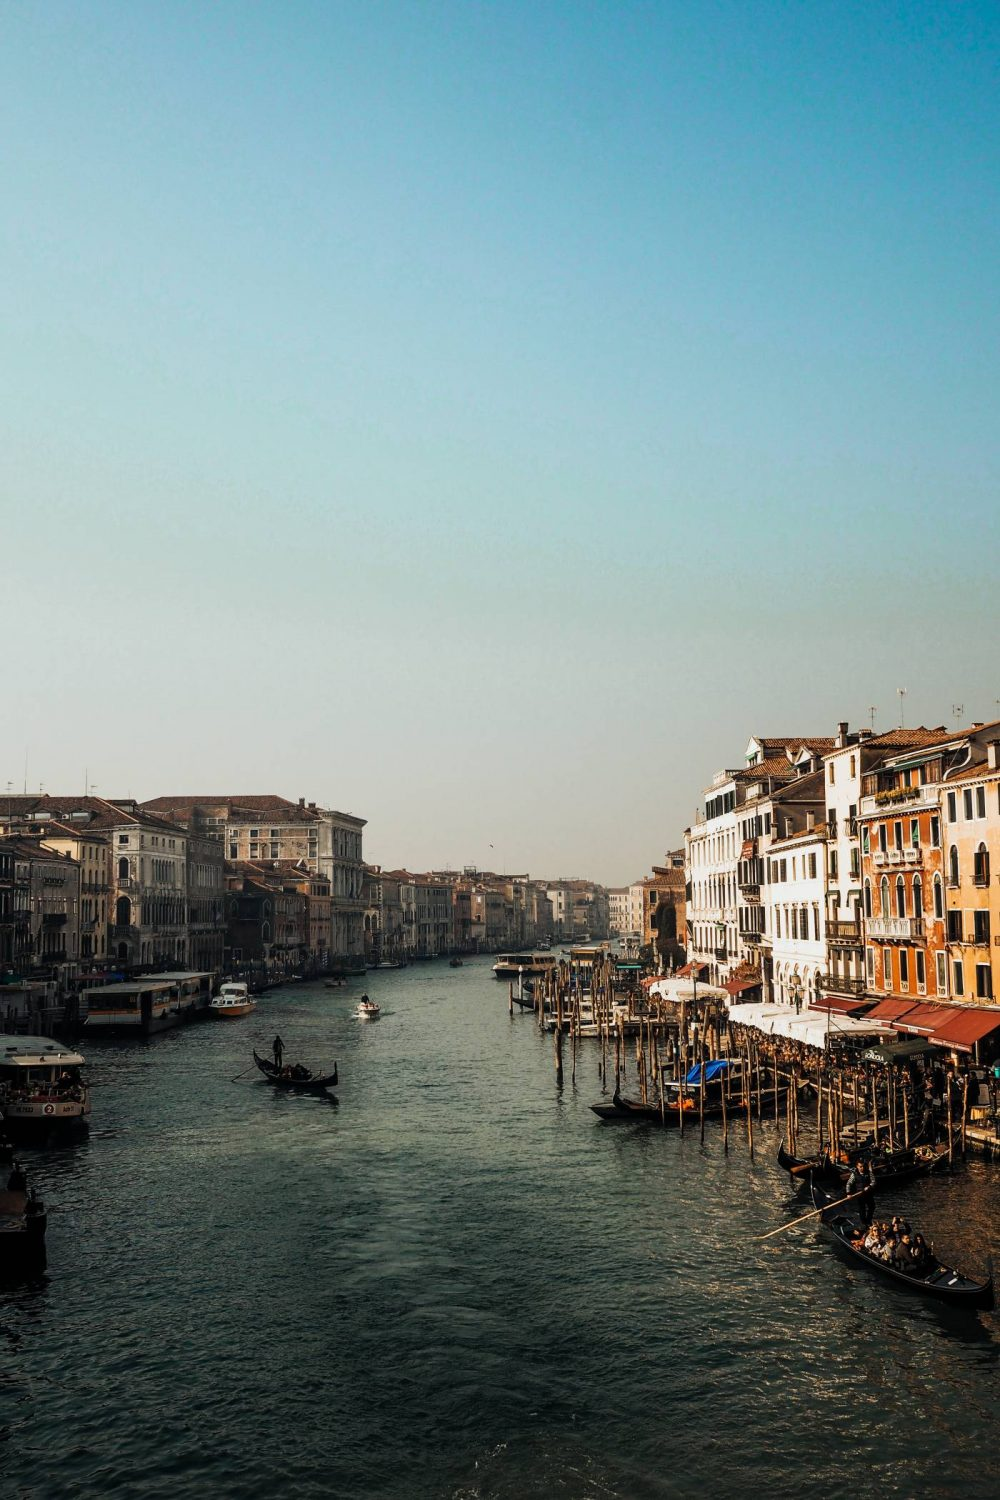 View from the Rialto bridge over the Grand Canal